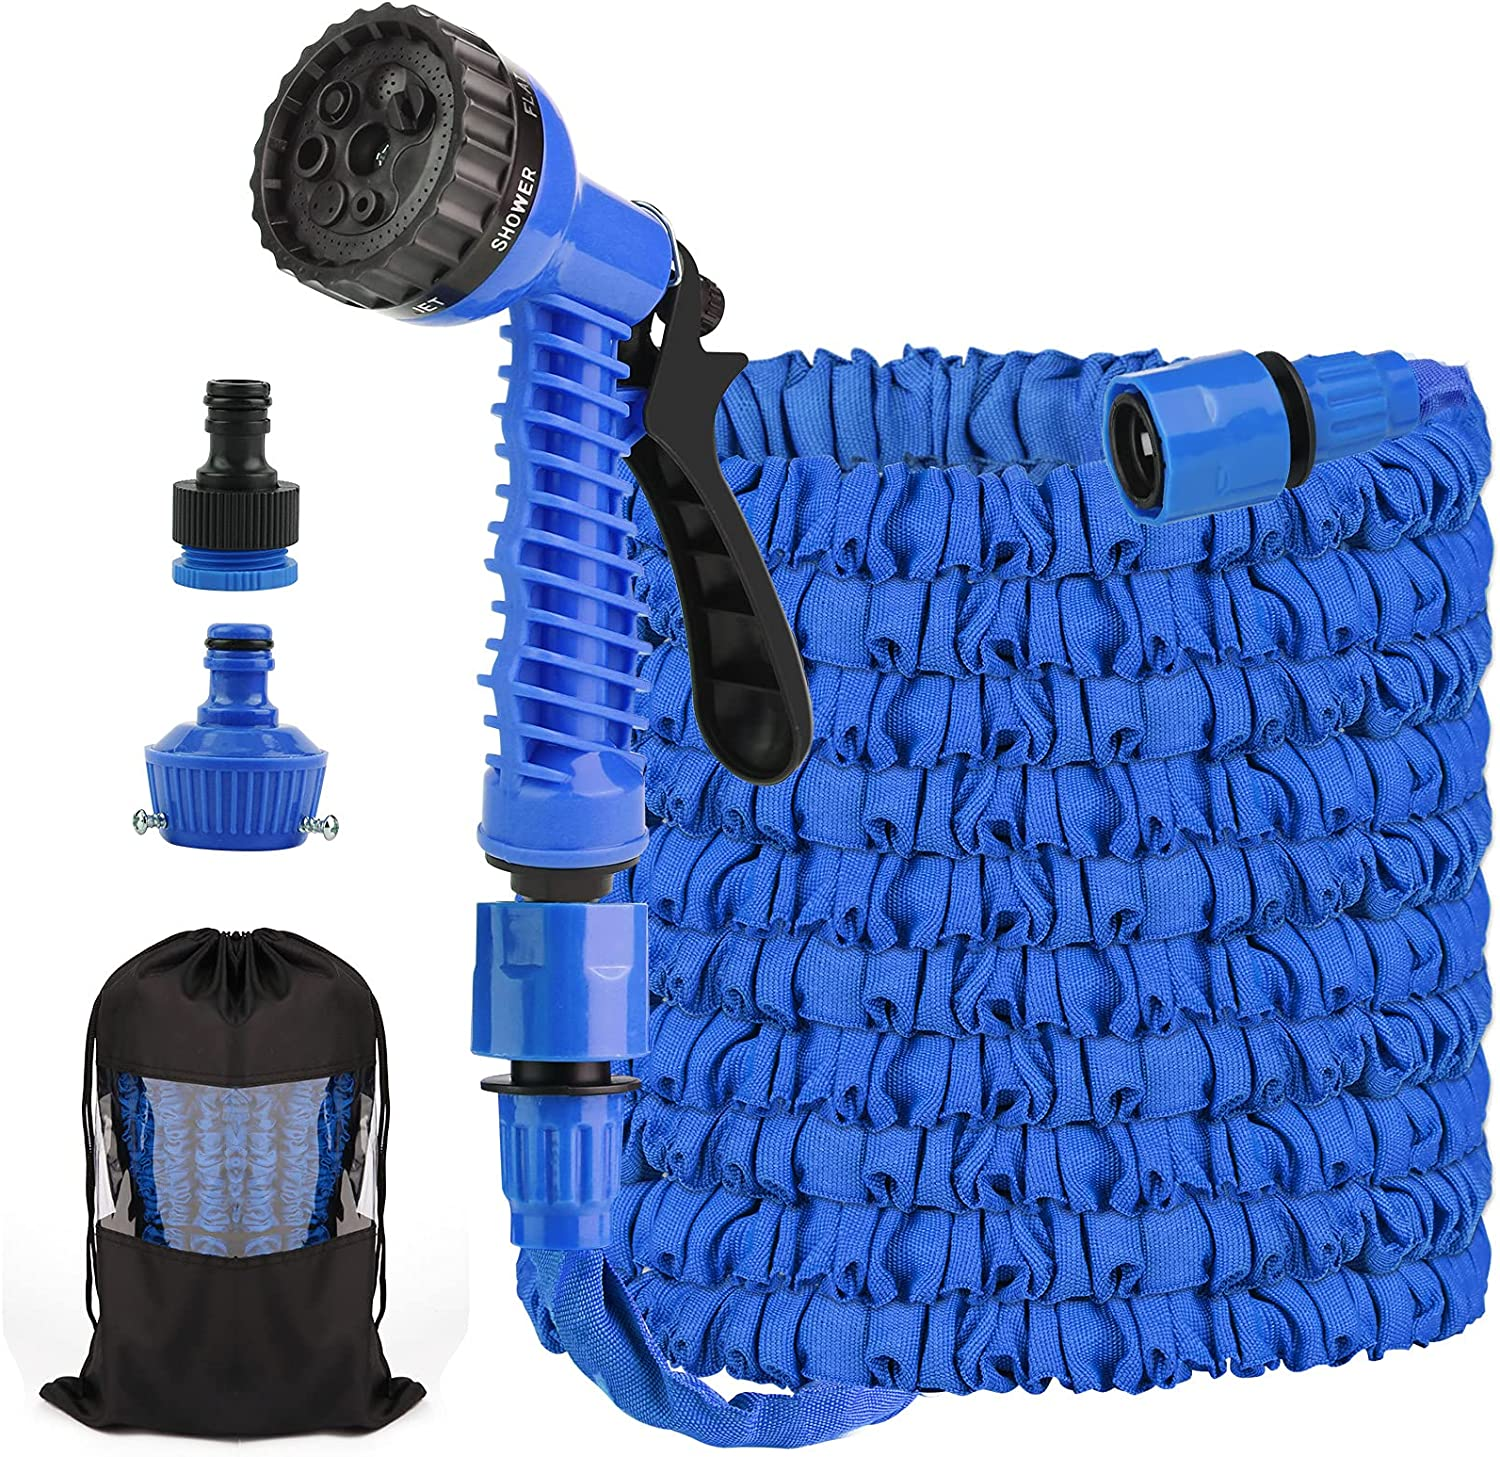 125ft Expandable Garden Hoses Flexible Water Hose with 7 Function Spray Gun Nozzles, Lightweight Retractable Hose Pipe for Outdoor Lawn Pet Shower Plant Car (Blue)